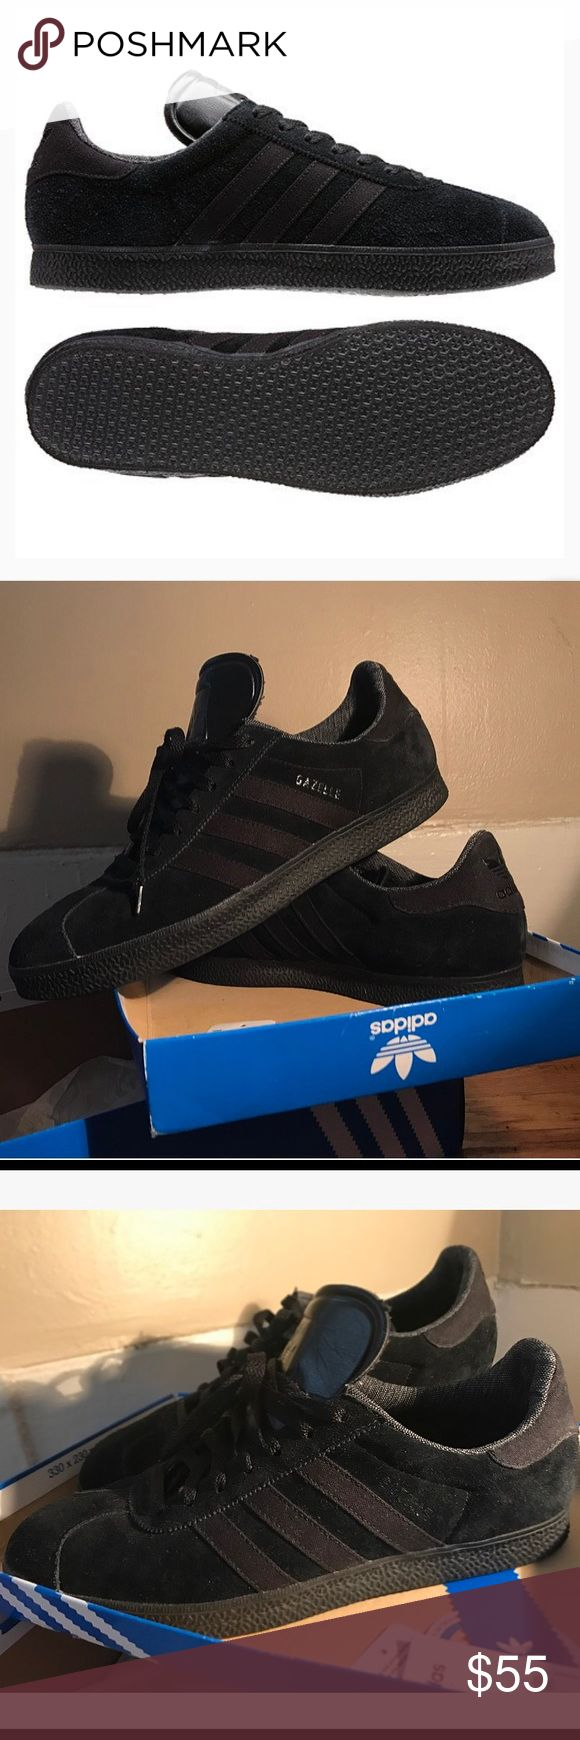 Men's Adidas Originals Gazelle 2.0 Adidas Gazelle II(Black Pack.) Like new condition. Only worn 3 times. Soft Suede upper, rubber outsole. Men's size 12. Will be in original box w/ tags included Adidas Shoes